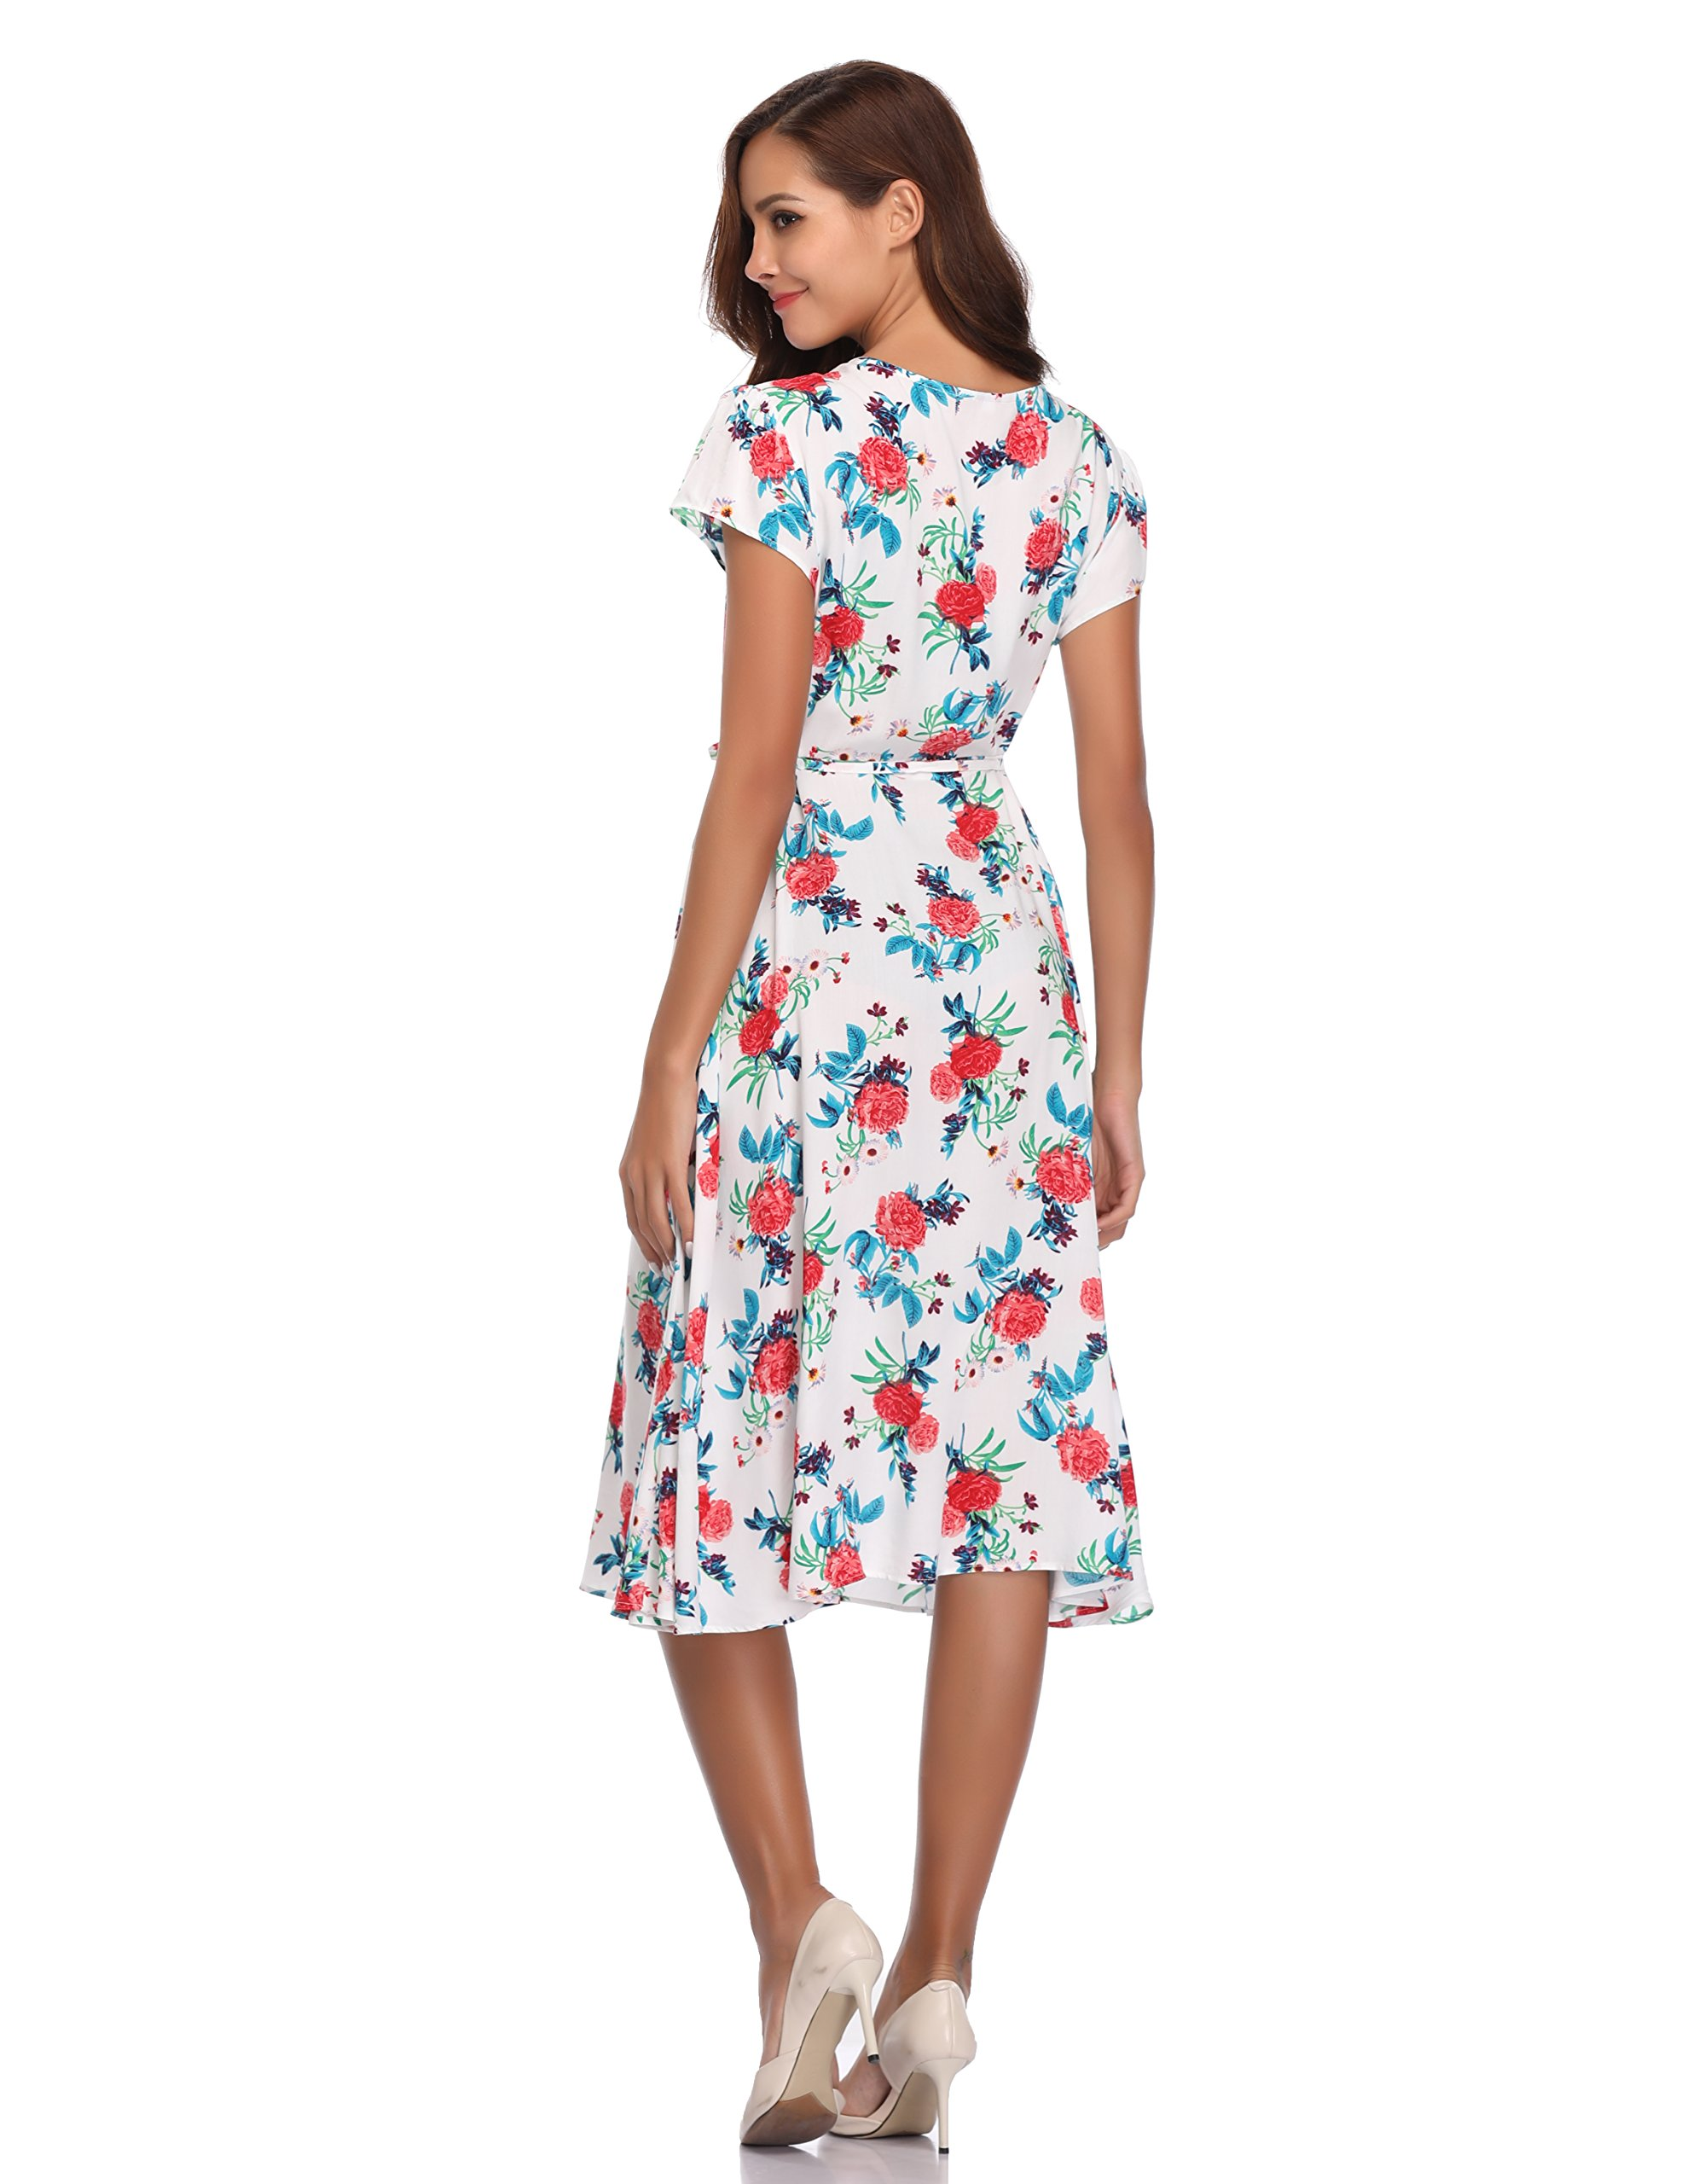 Floating Time Women's Floral Print Short Sleeve Midi Wrap Dress(S, CF42583-3) by Floating Time (Image #5)